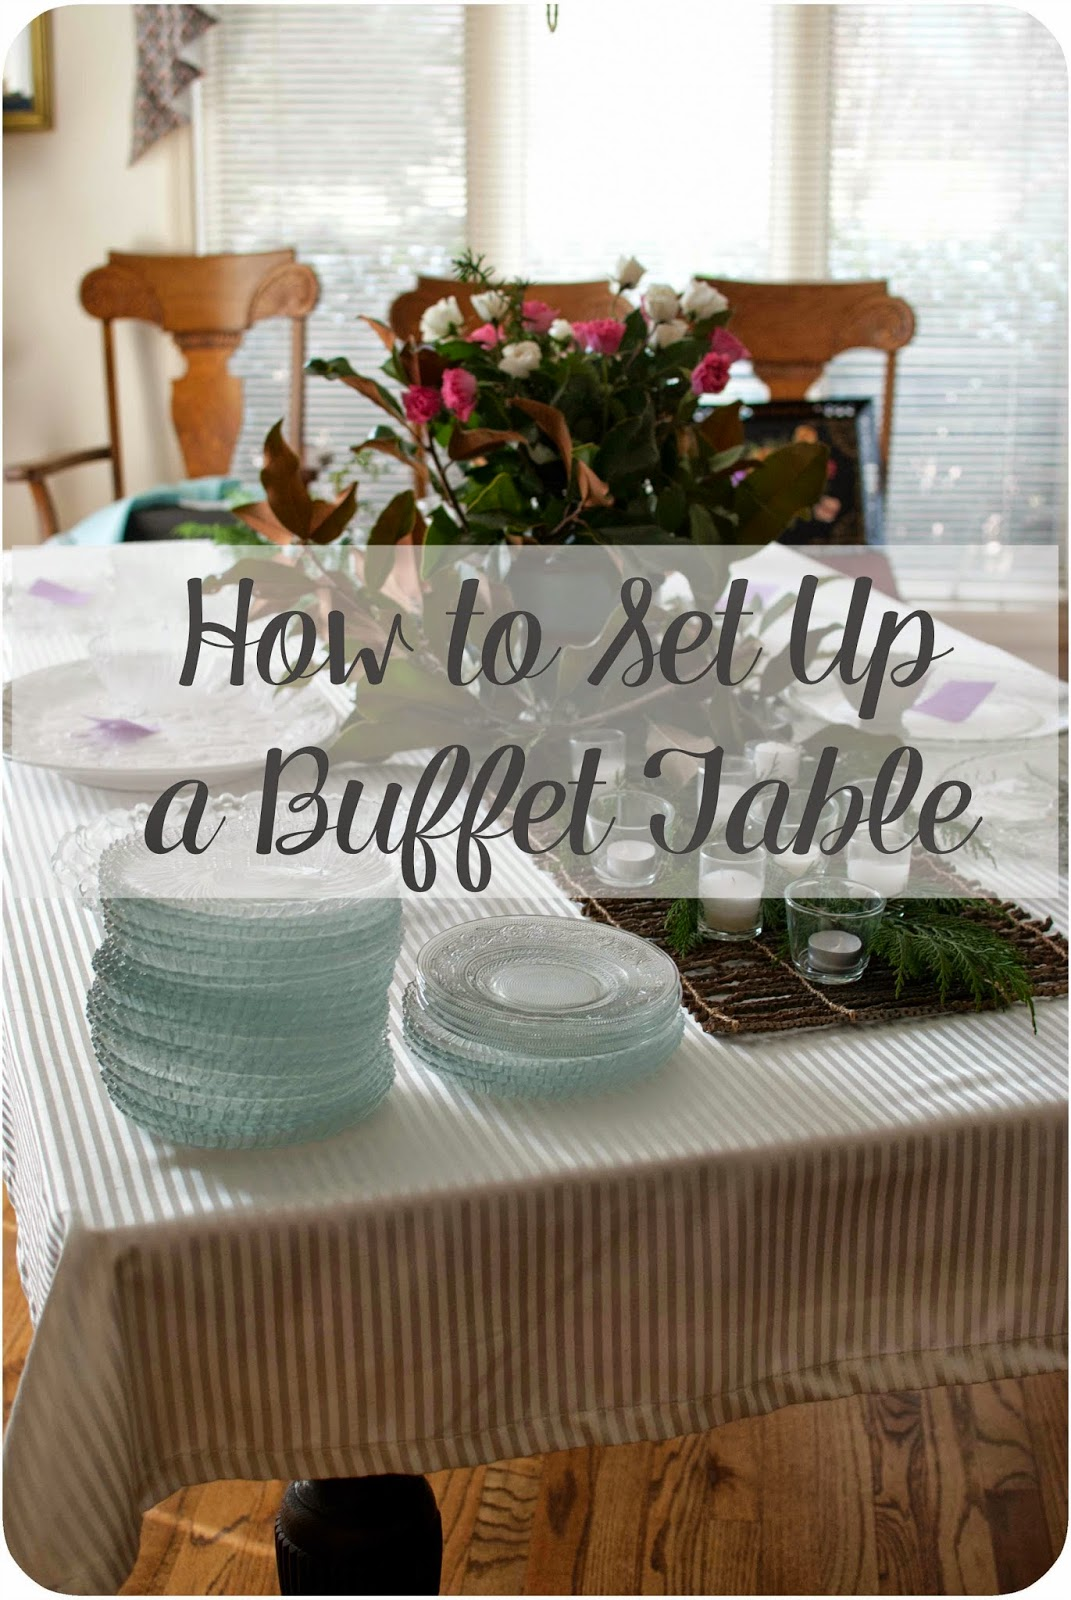 Sweetpea-Lifestyle: How To Set Up A Buffet Table